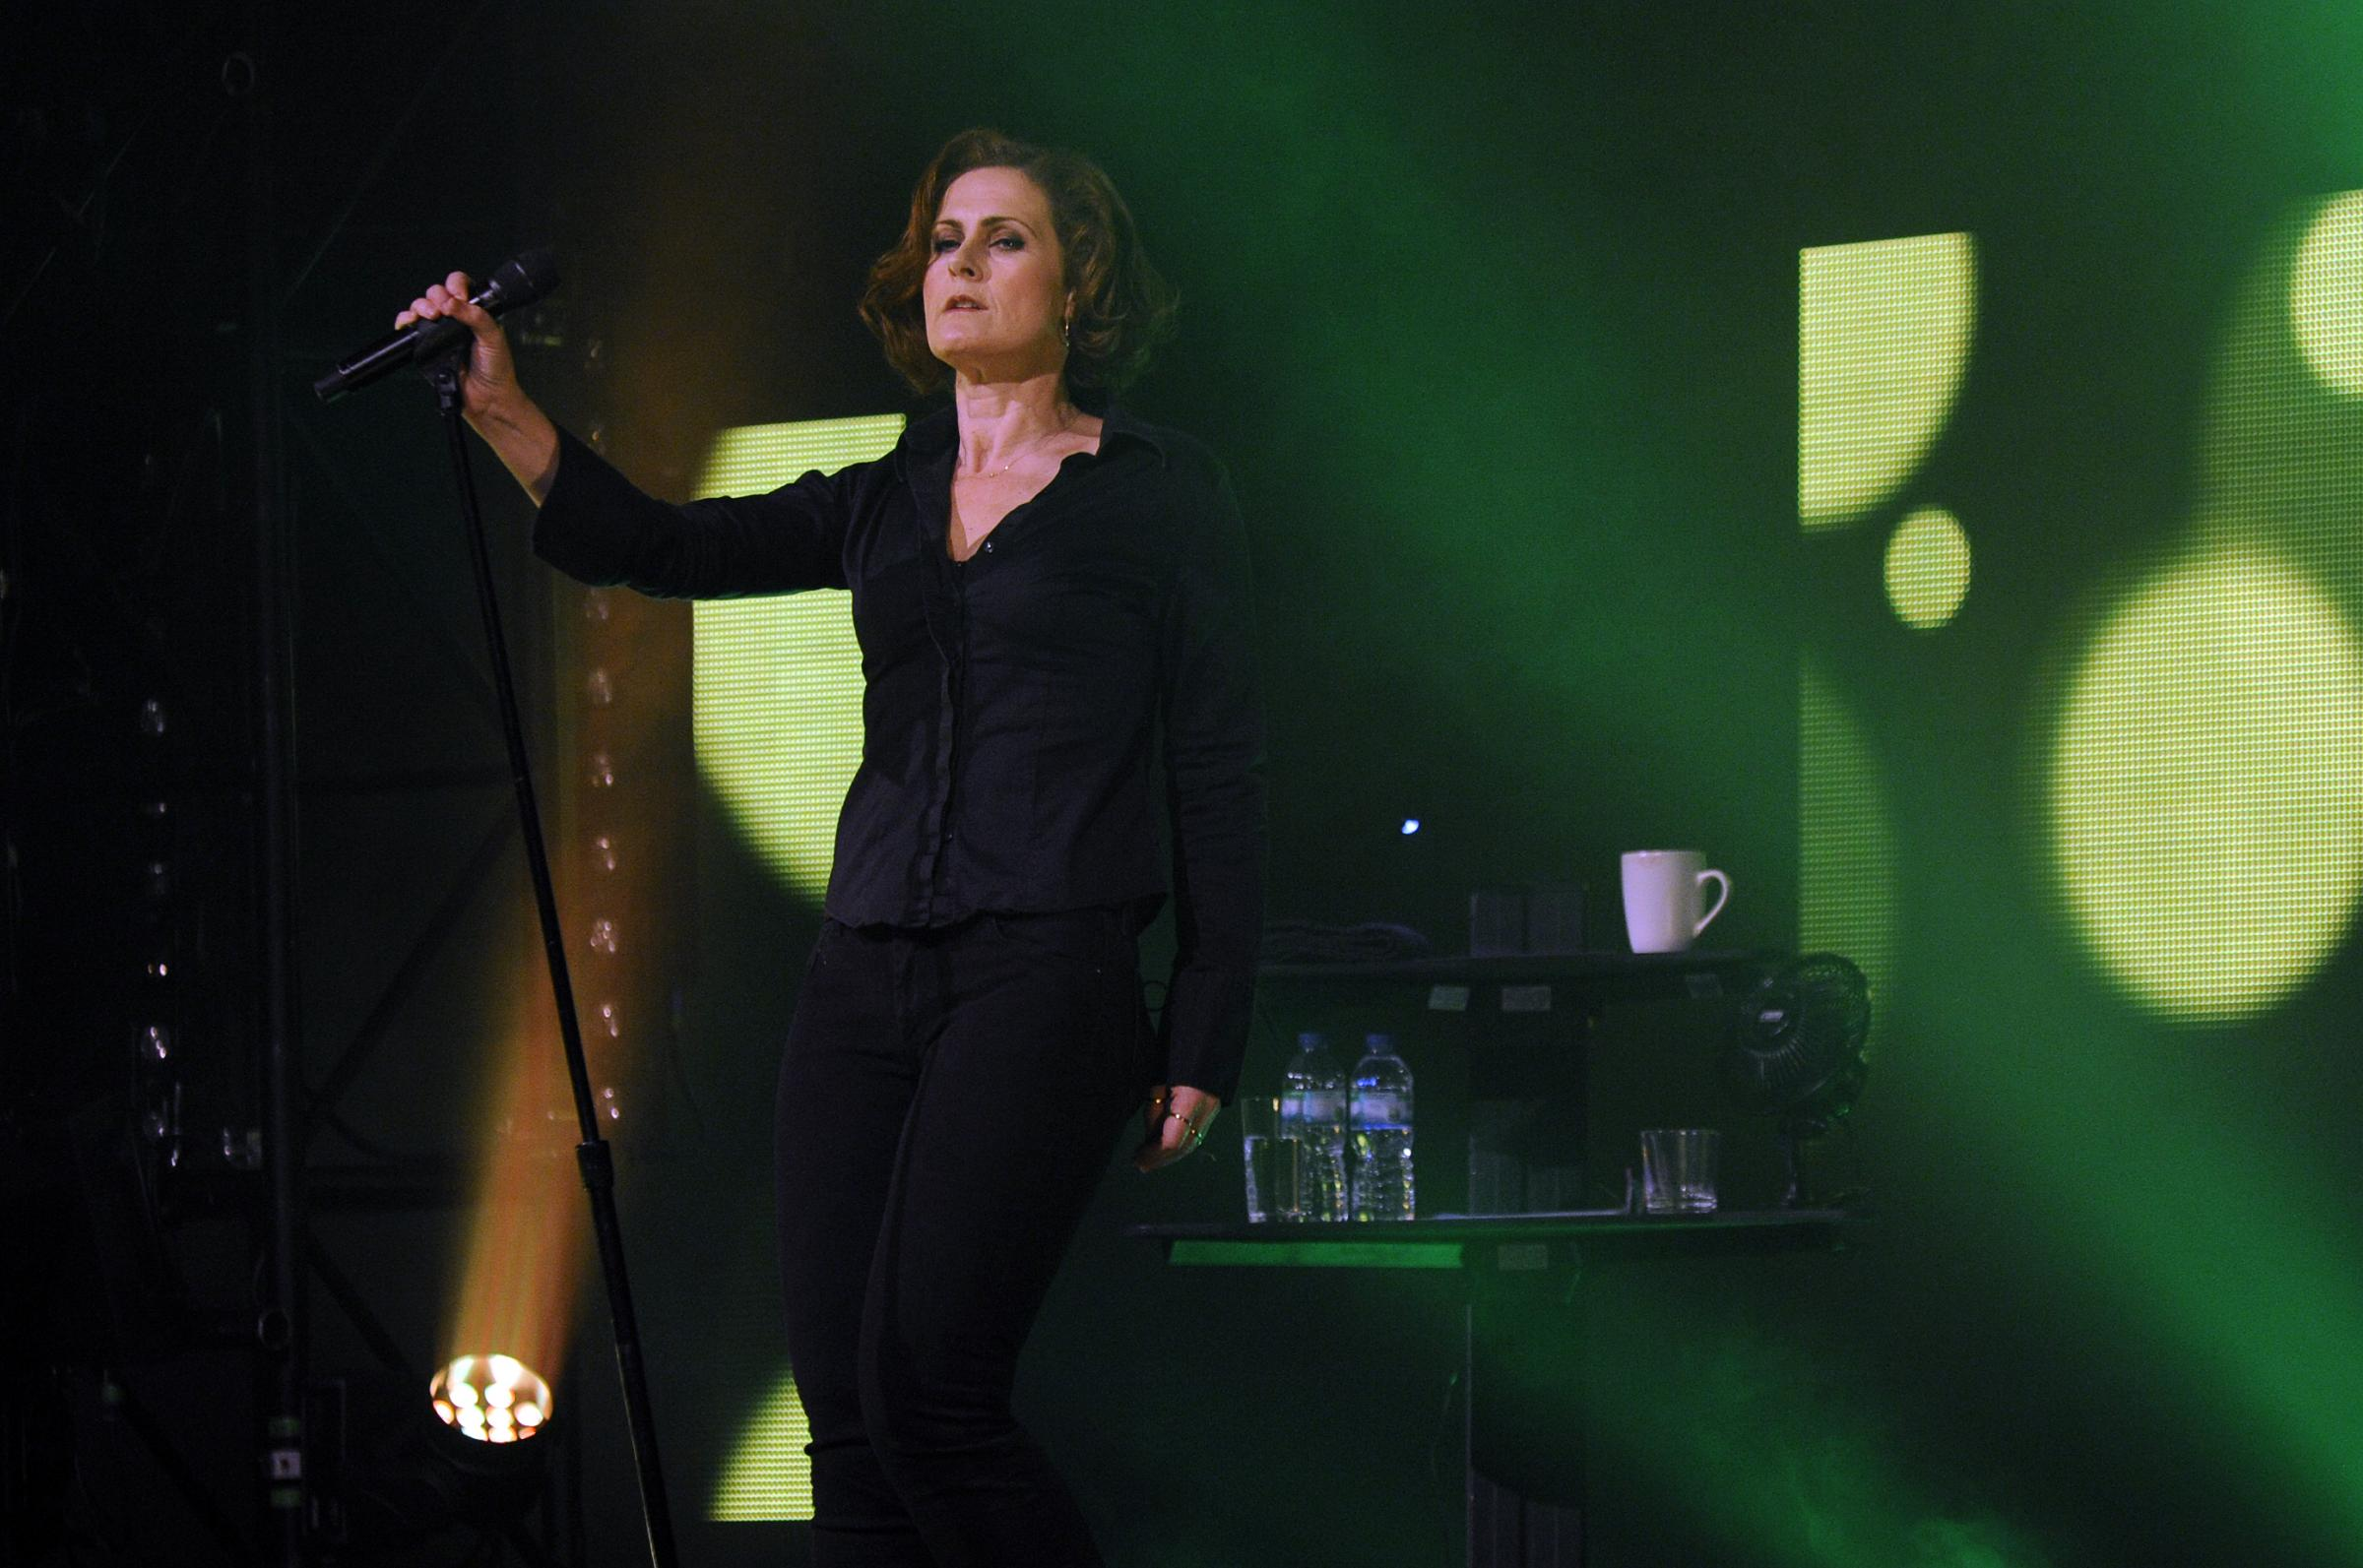 Alison Moyet in her spellbinding performance at York Barbican